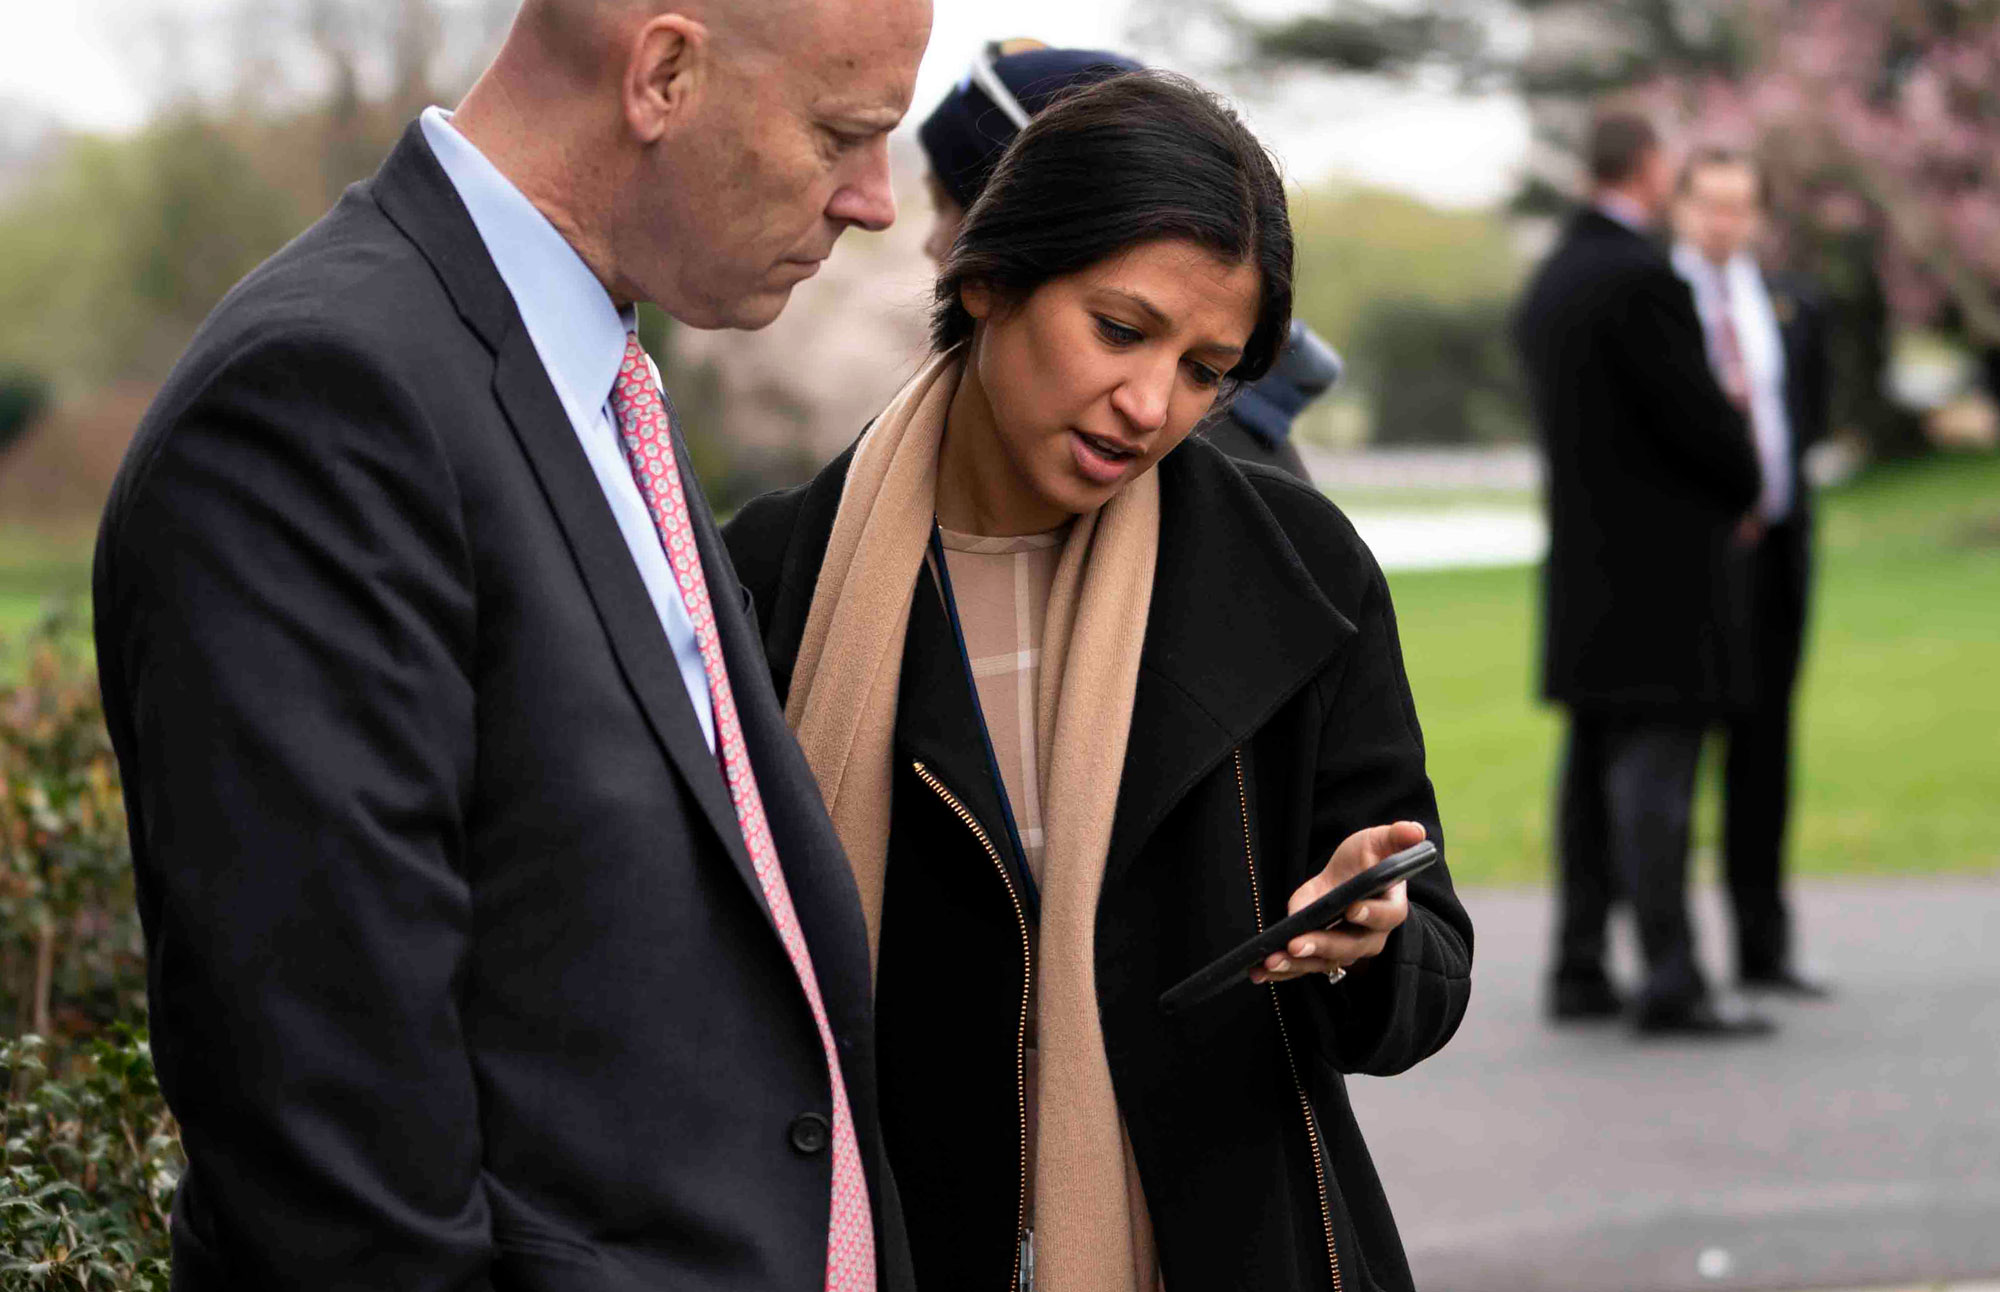 Katie Miller, Vice President Mike Pence's press secretary, speaks with Marc Short, Chief of Staff for Vice President Mike Pence, in the Rose Garden of the White House on March 24, in Washington.